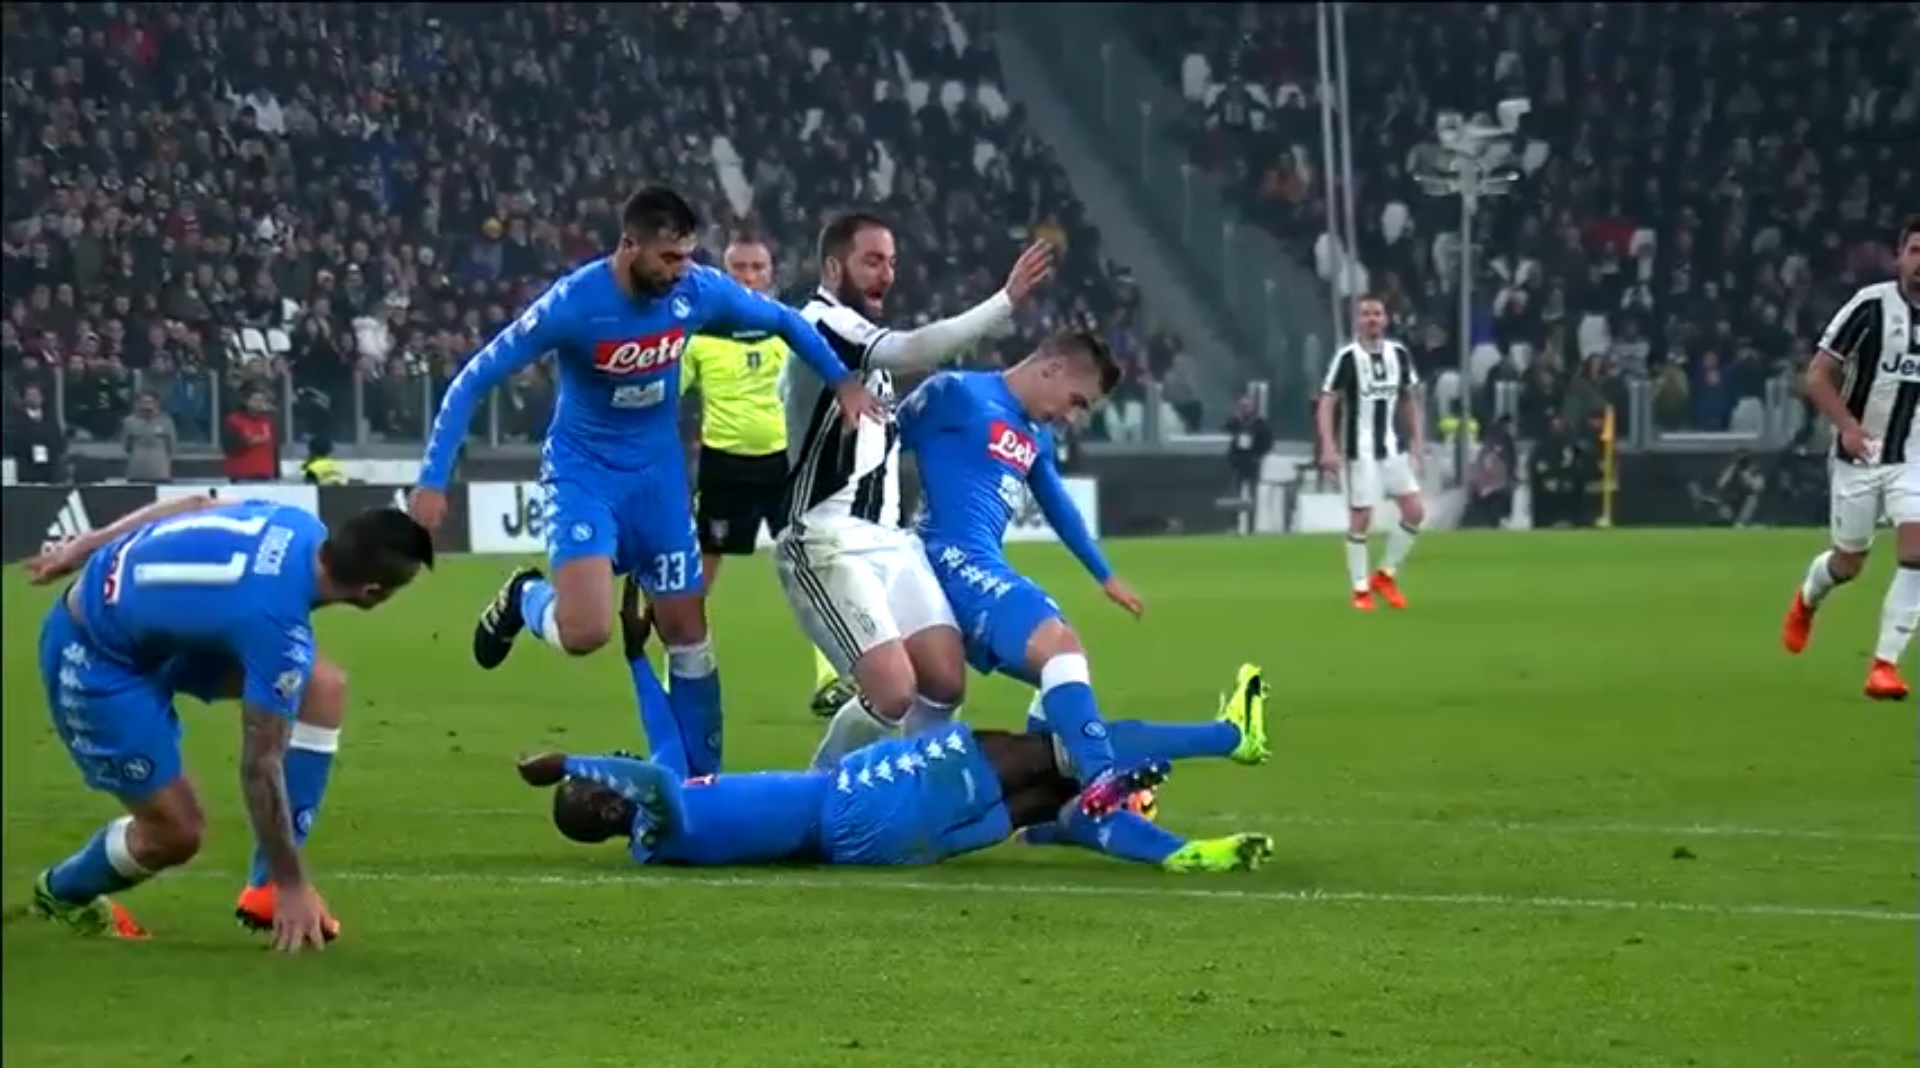 VIDEO Juventus 3 - 1 SSC Napoli Highlights - FootyRoom